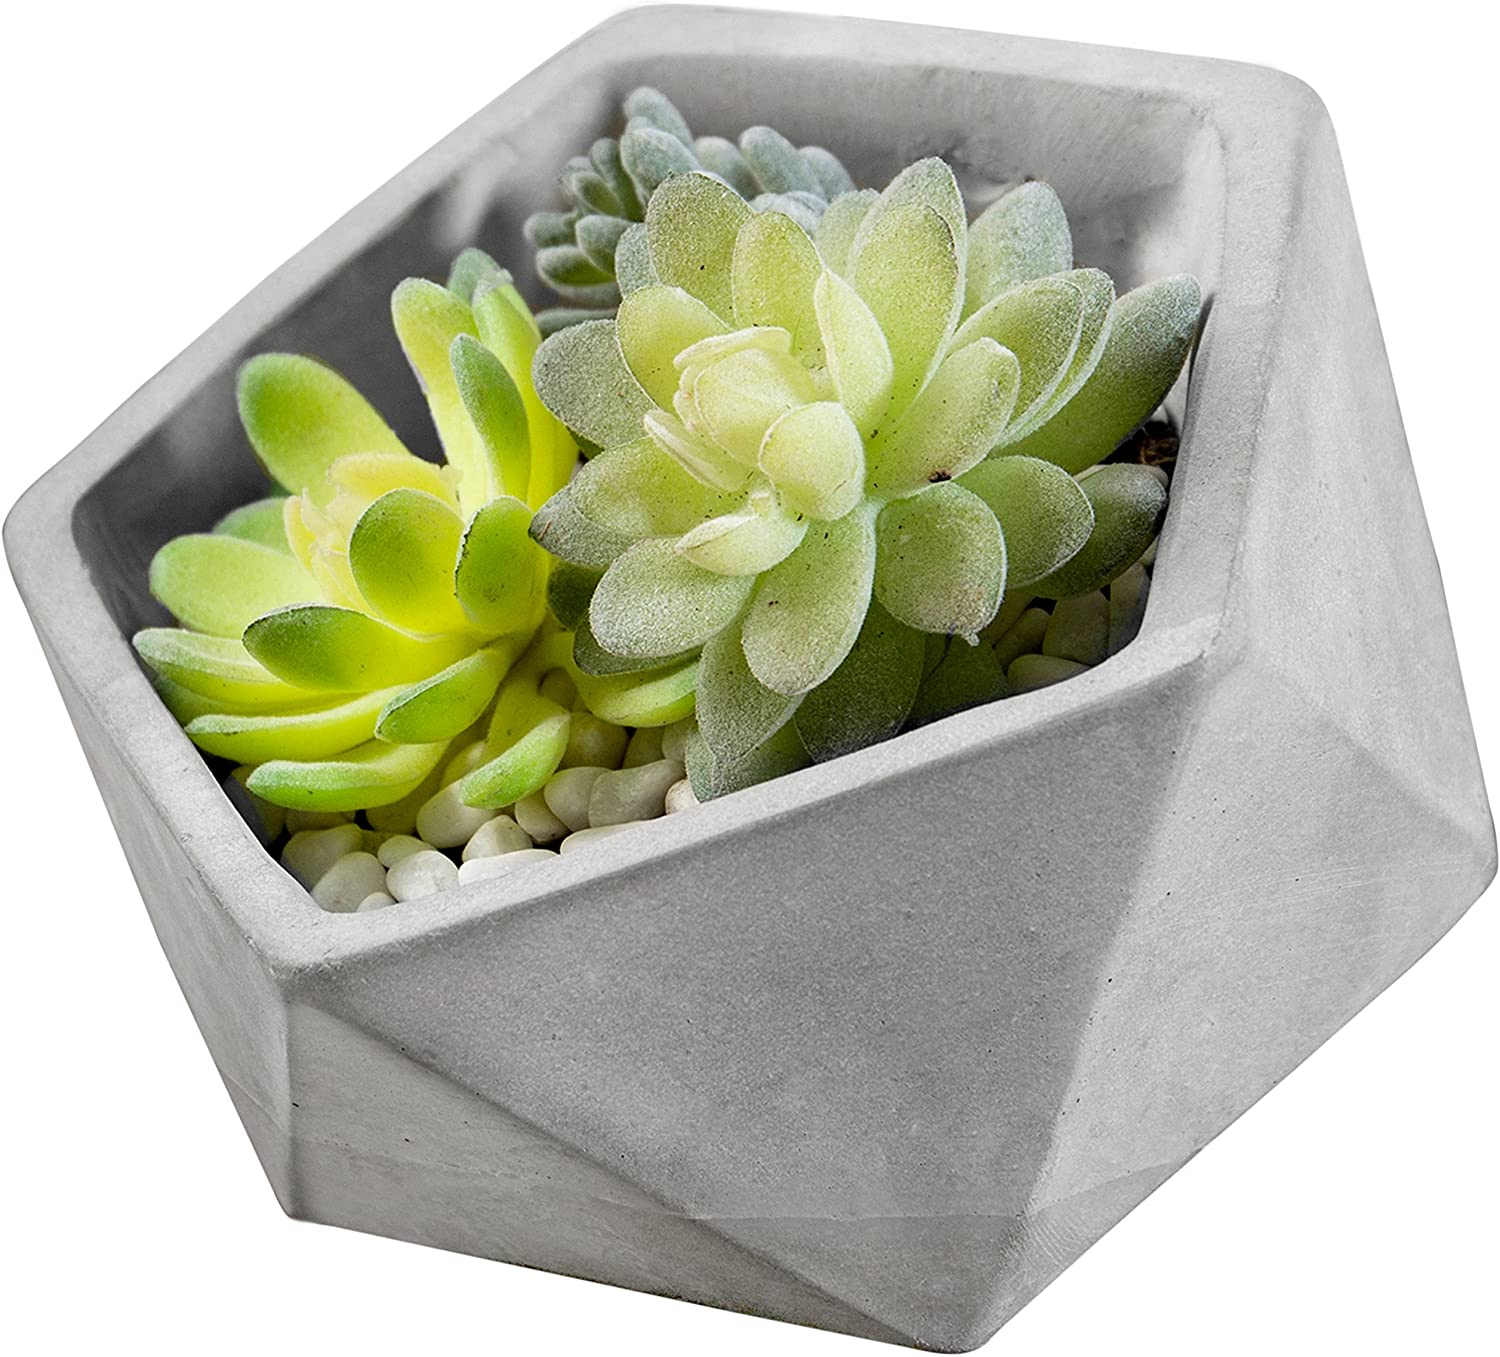 MyGift 6-Inch Triangle-Faceted Tilted Clay Succulent Planter Pot, Gray